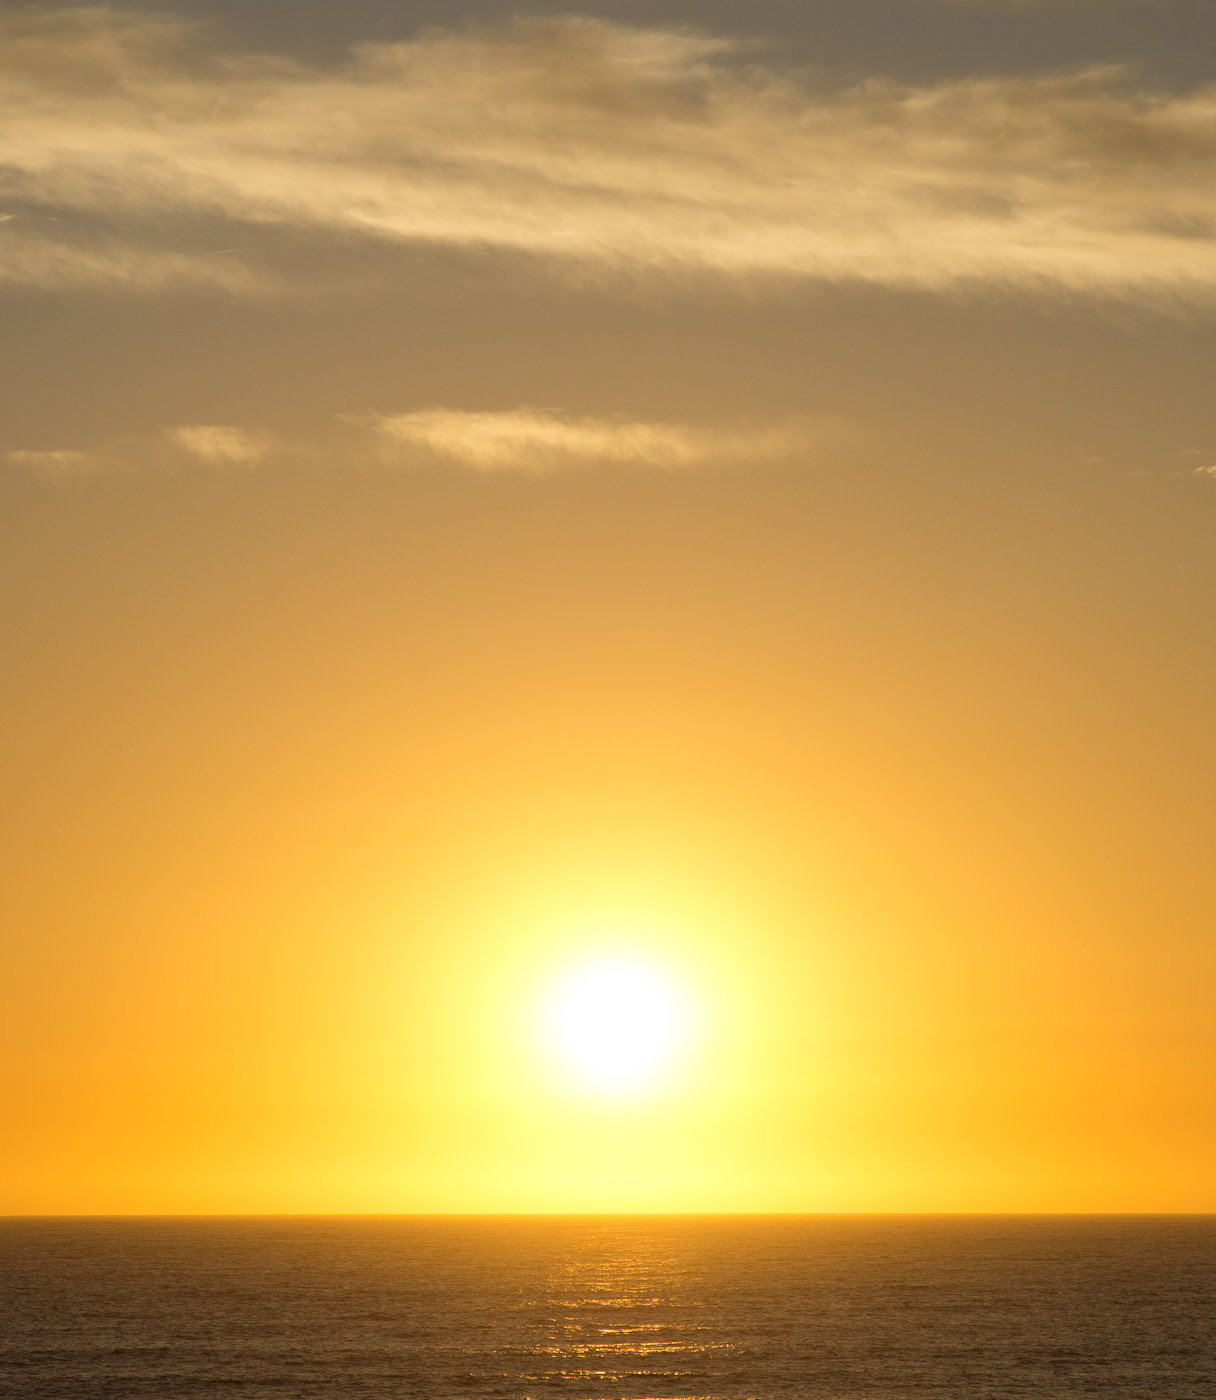 The Sun sets over the Indian Ocean in Western Australia. SOny NEX-5n and Leica Elmarit-M 90